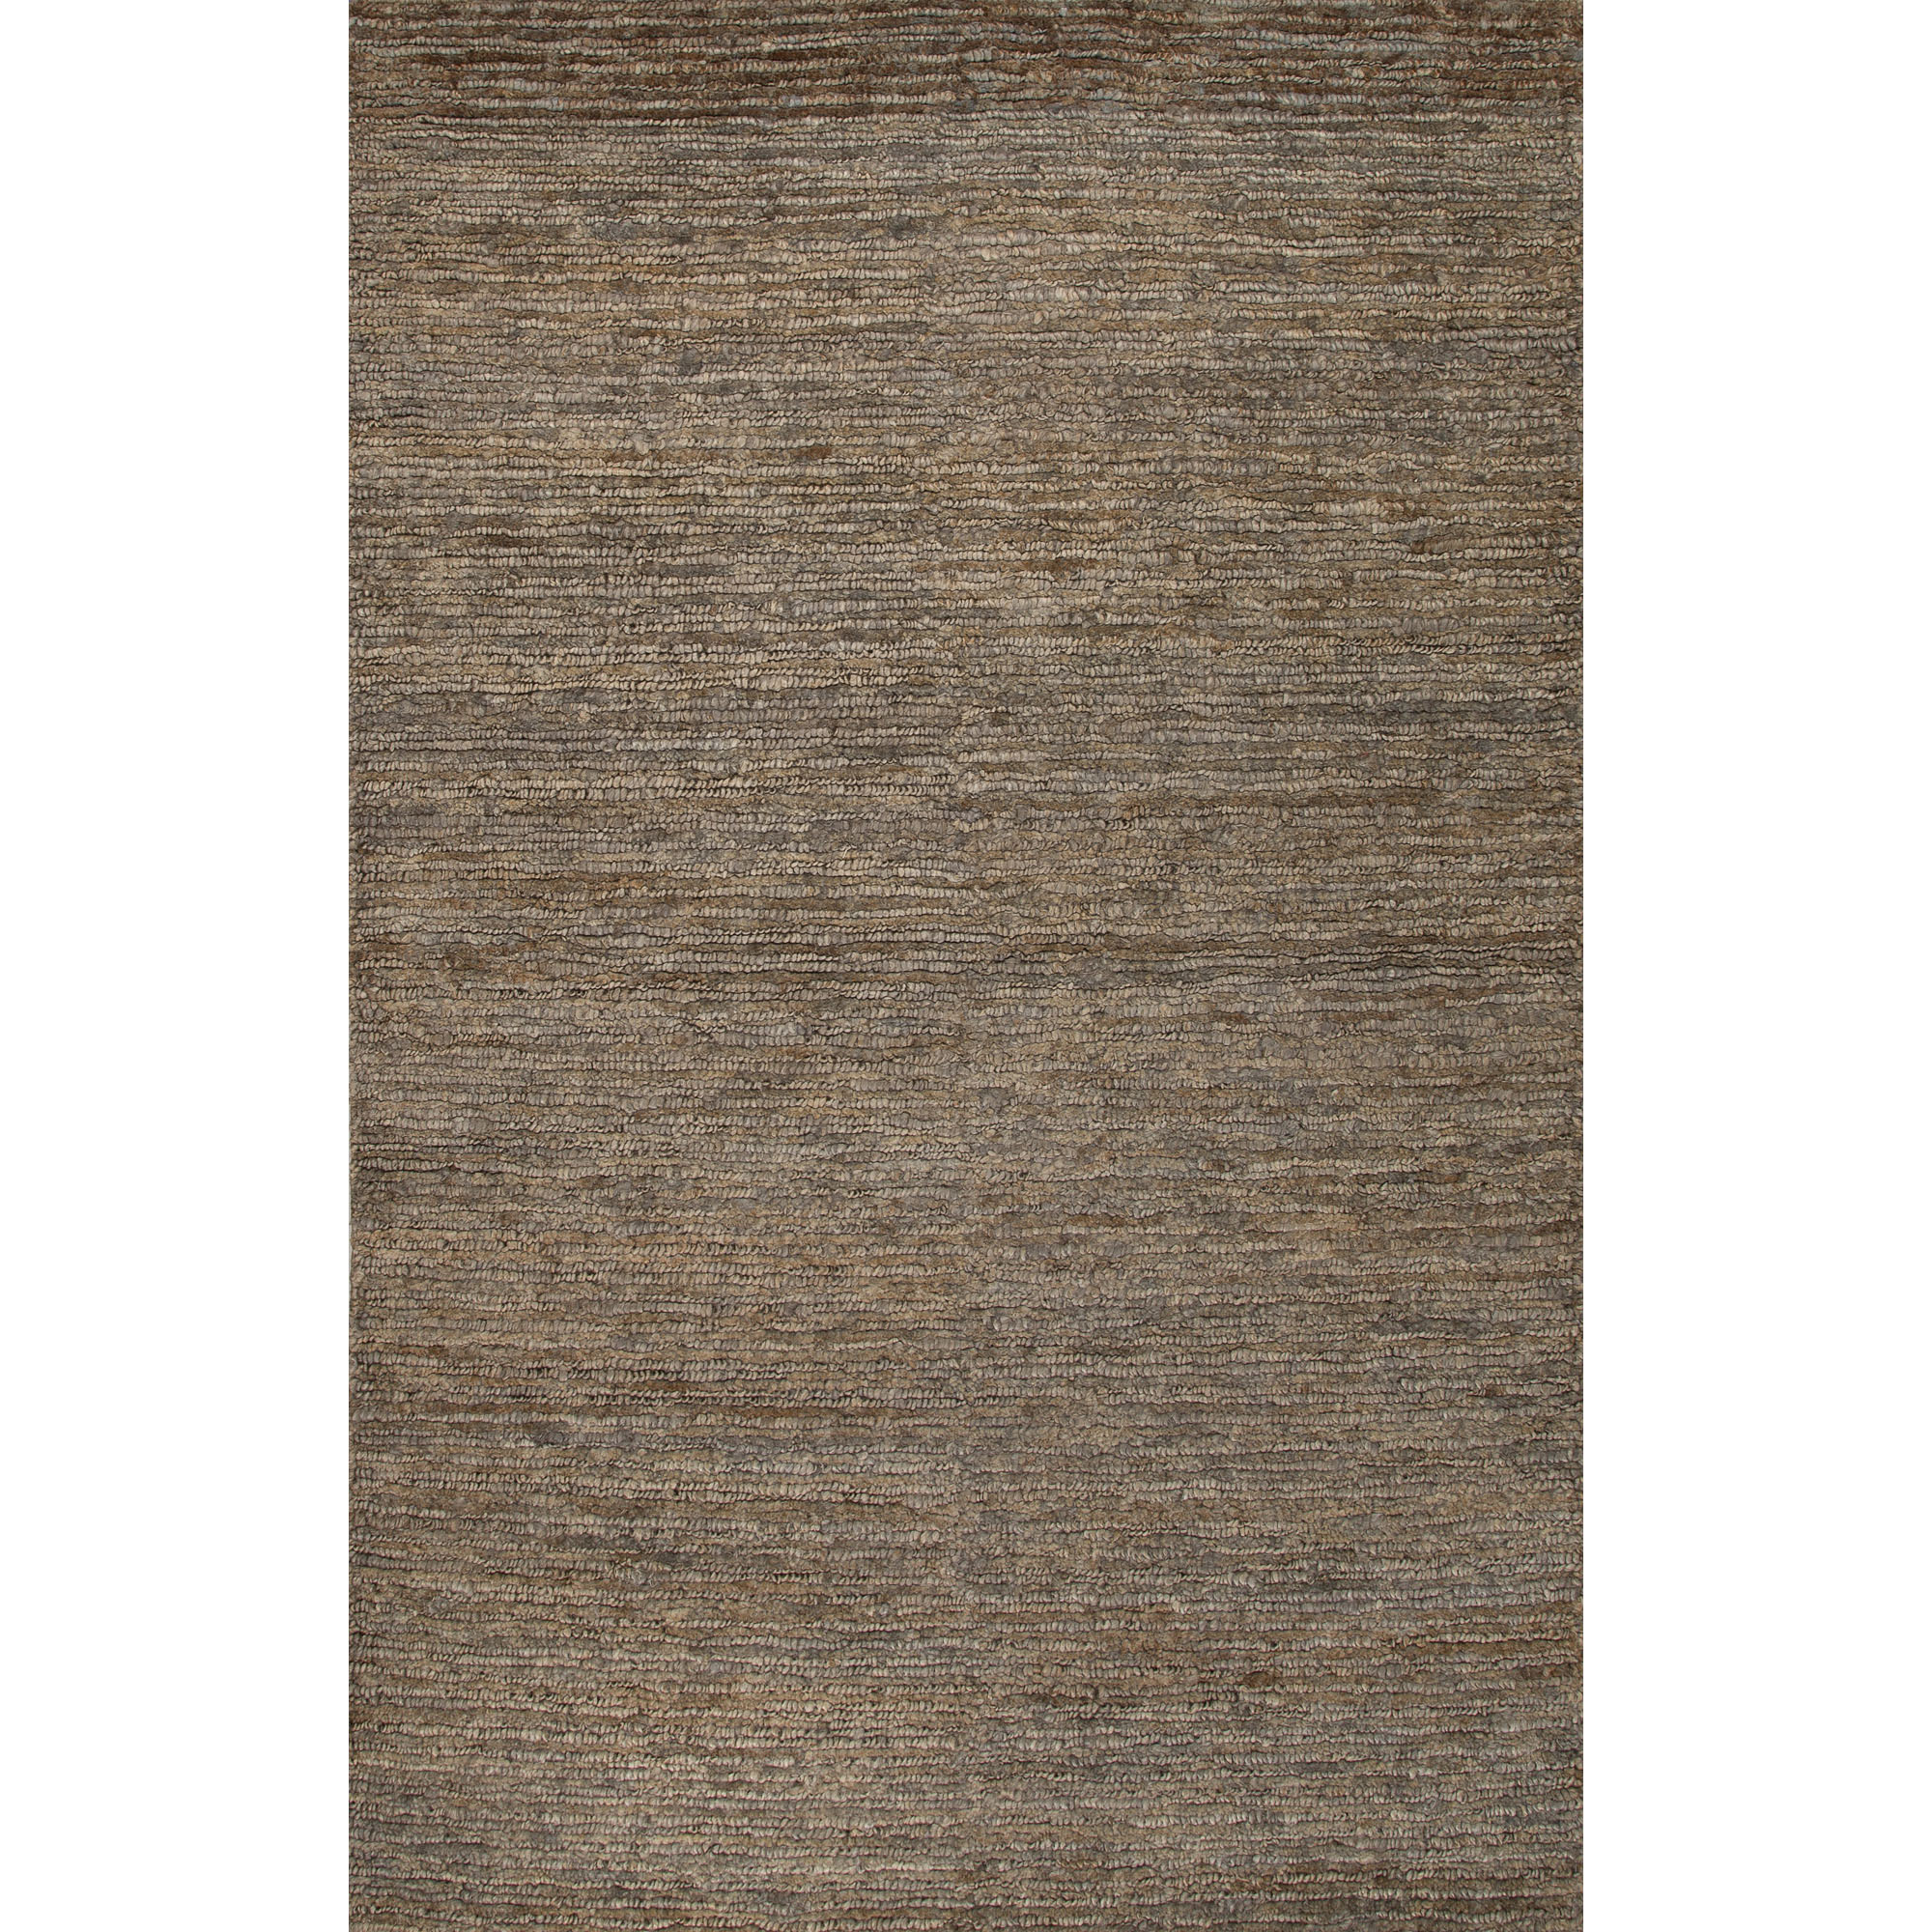 JAIPUR Rugs Naturals Treasure 2 x 3 Rug - Item Number: RUG116722